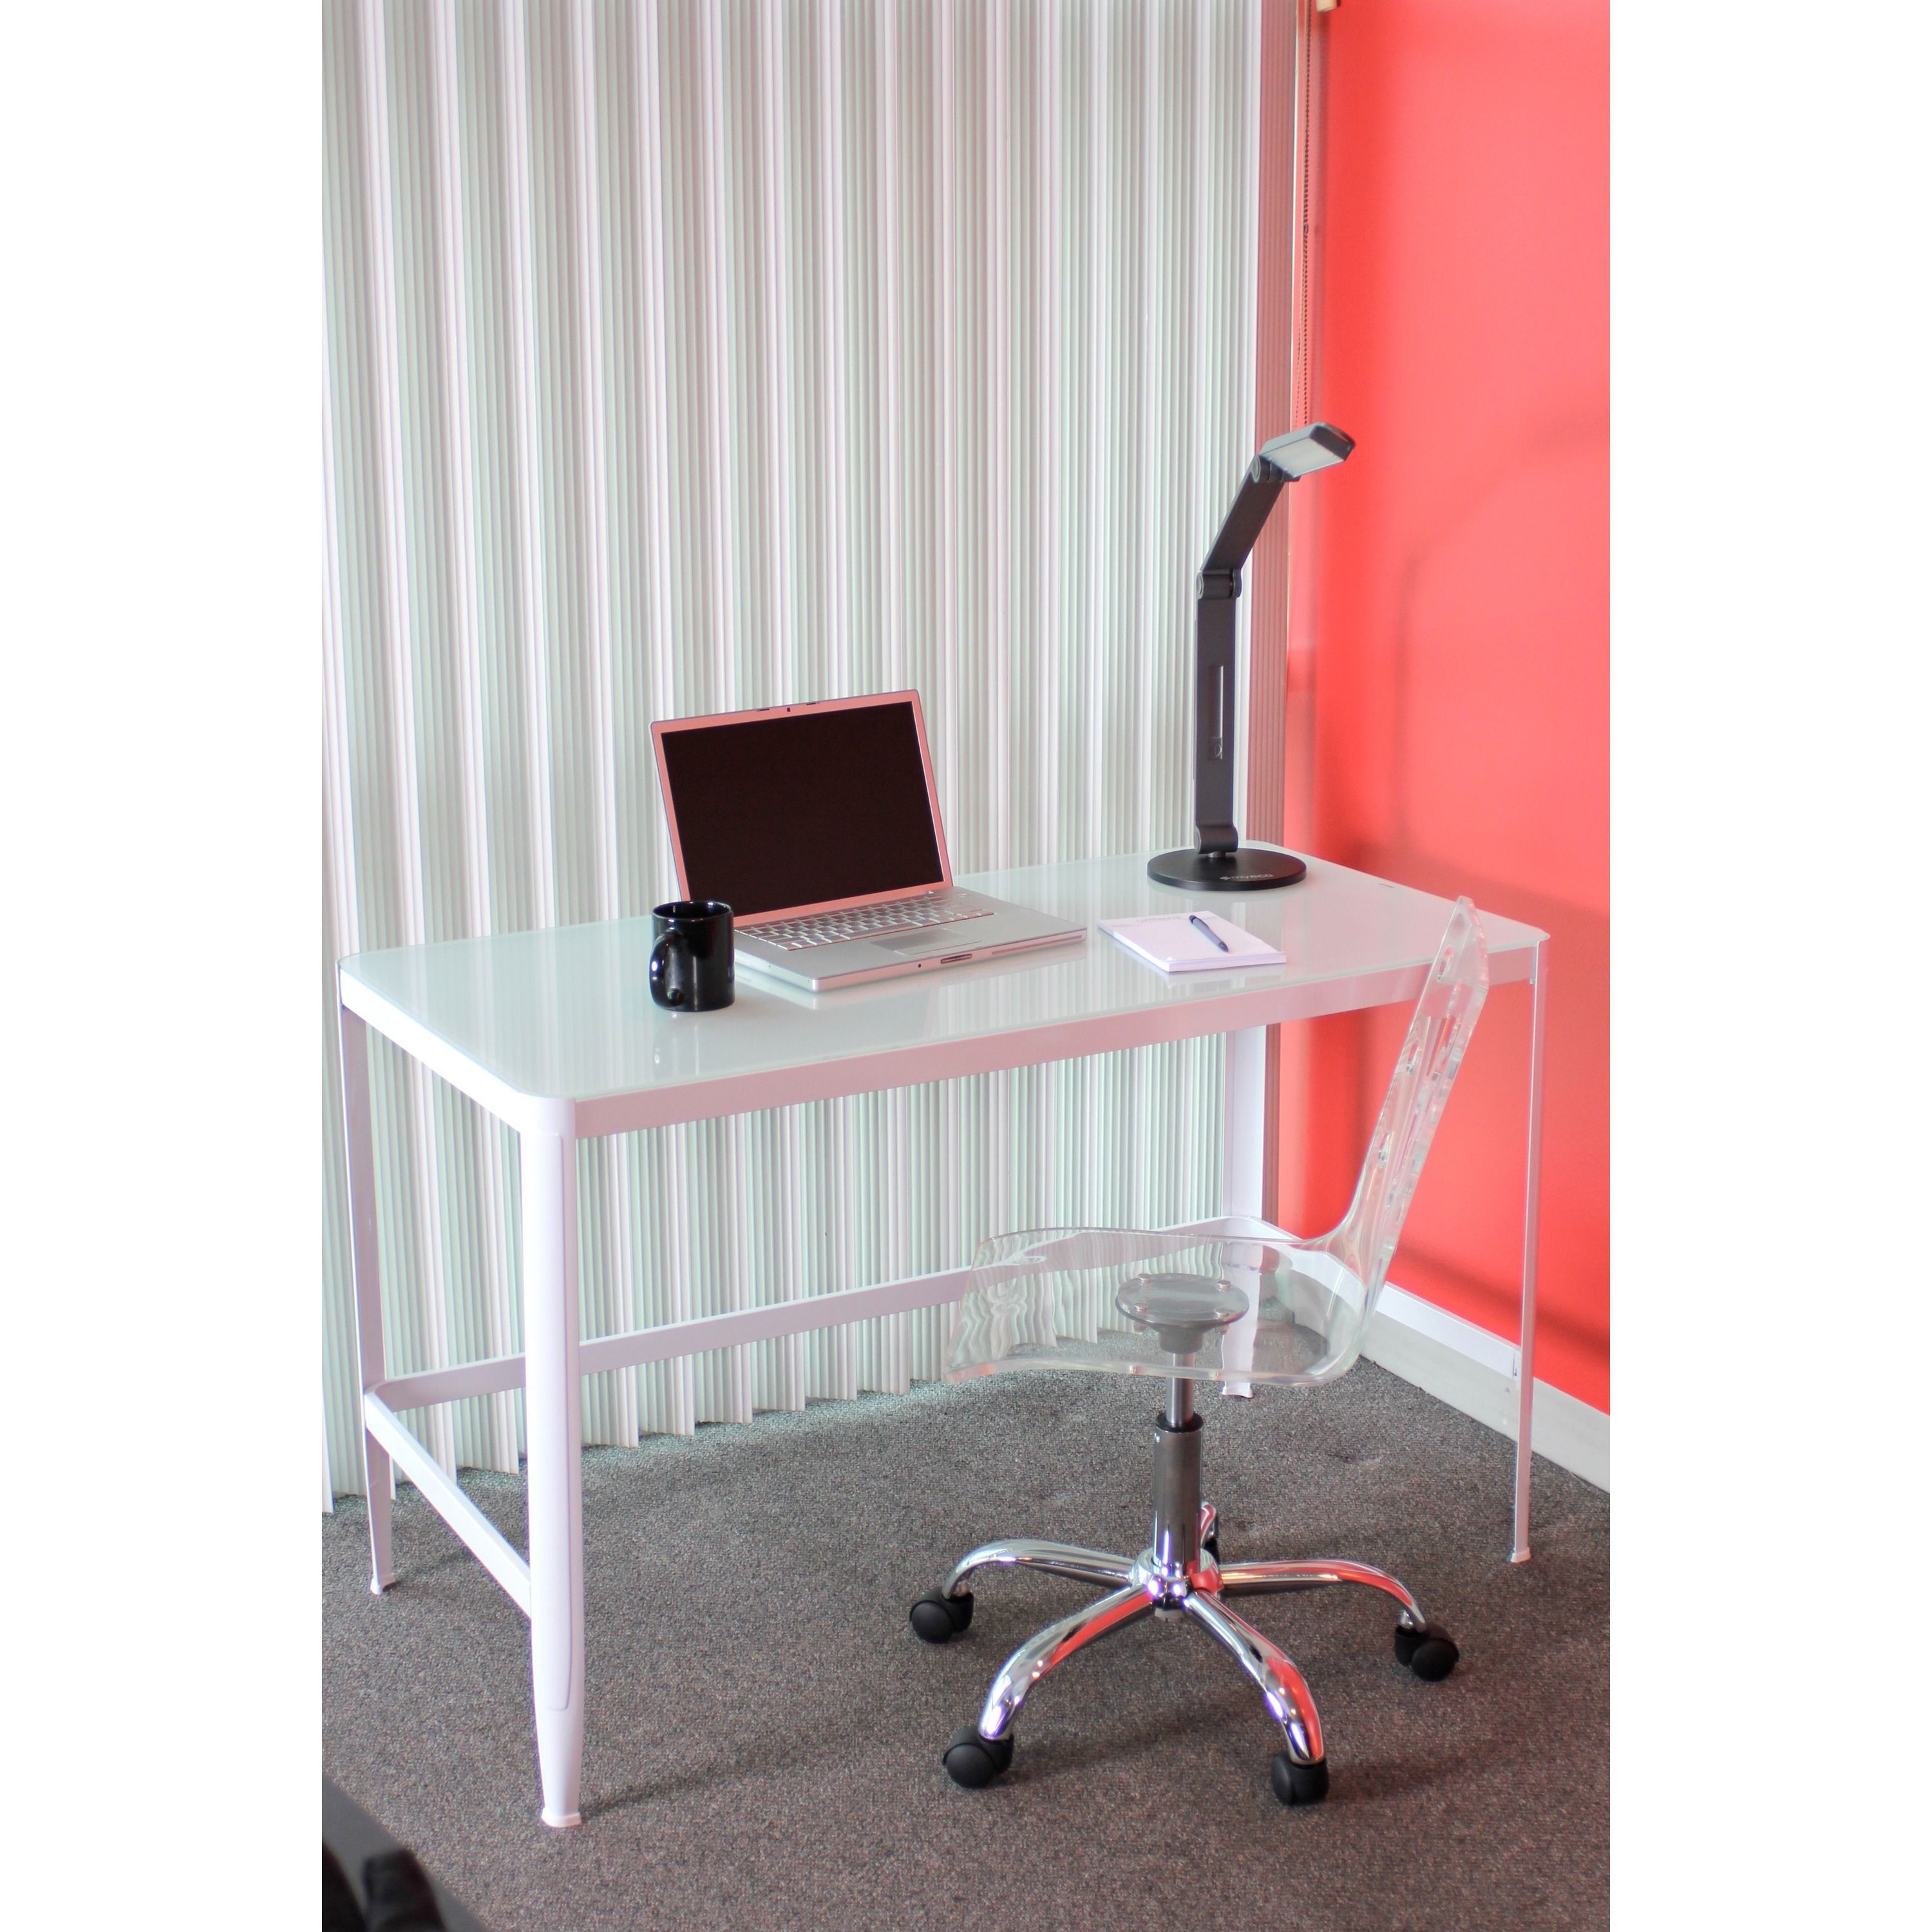 Executive office table with glass top this white retro table has a tempered glass top metal frame and is